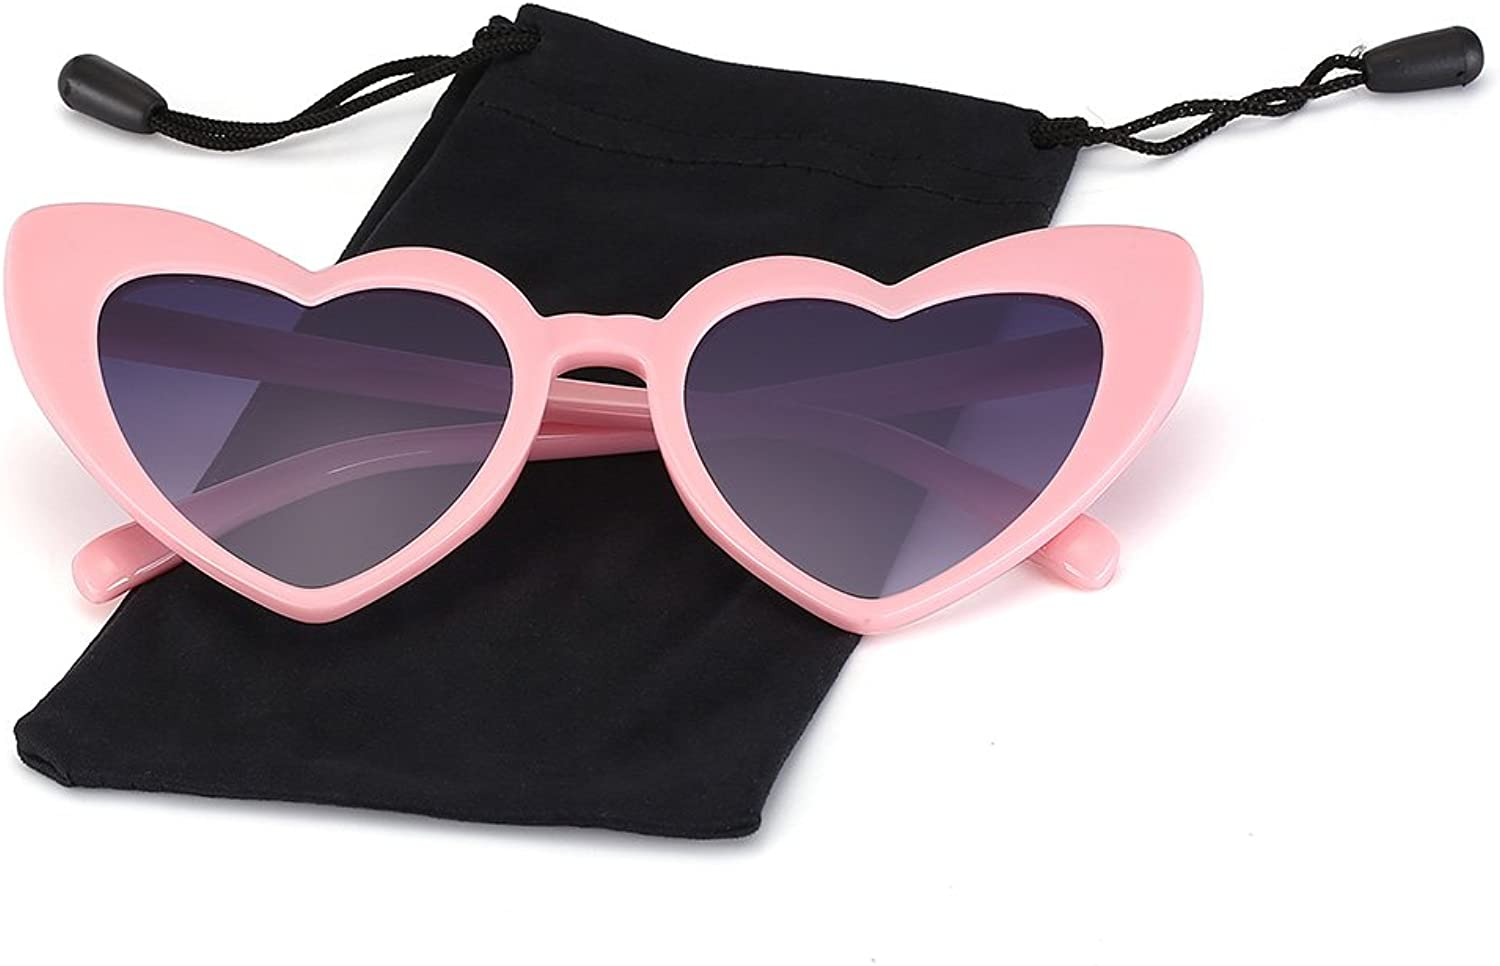 Heart Shaped Sunglasses for Women Clout Goggle Style Sun Glasses by LOOKEYE